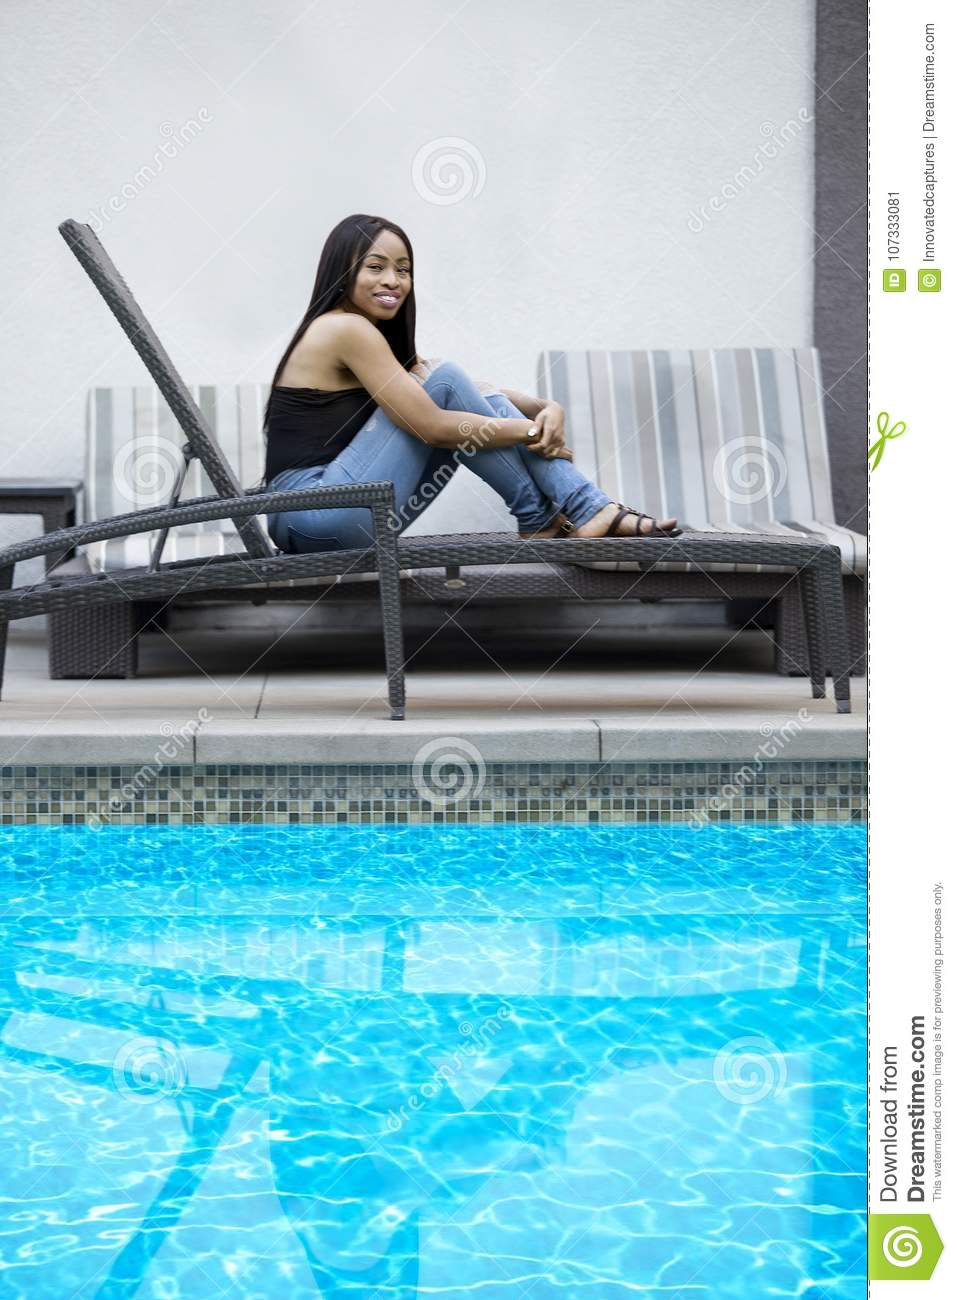 Single Lady Relaxing By The Pool Stock Image - Image of free